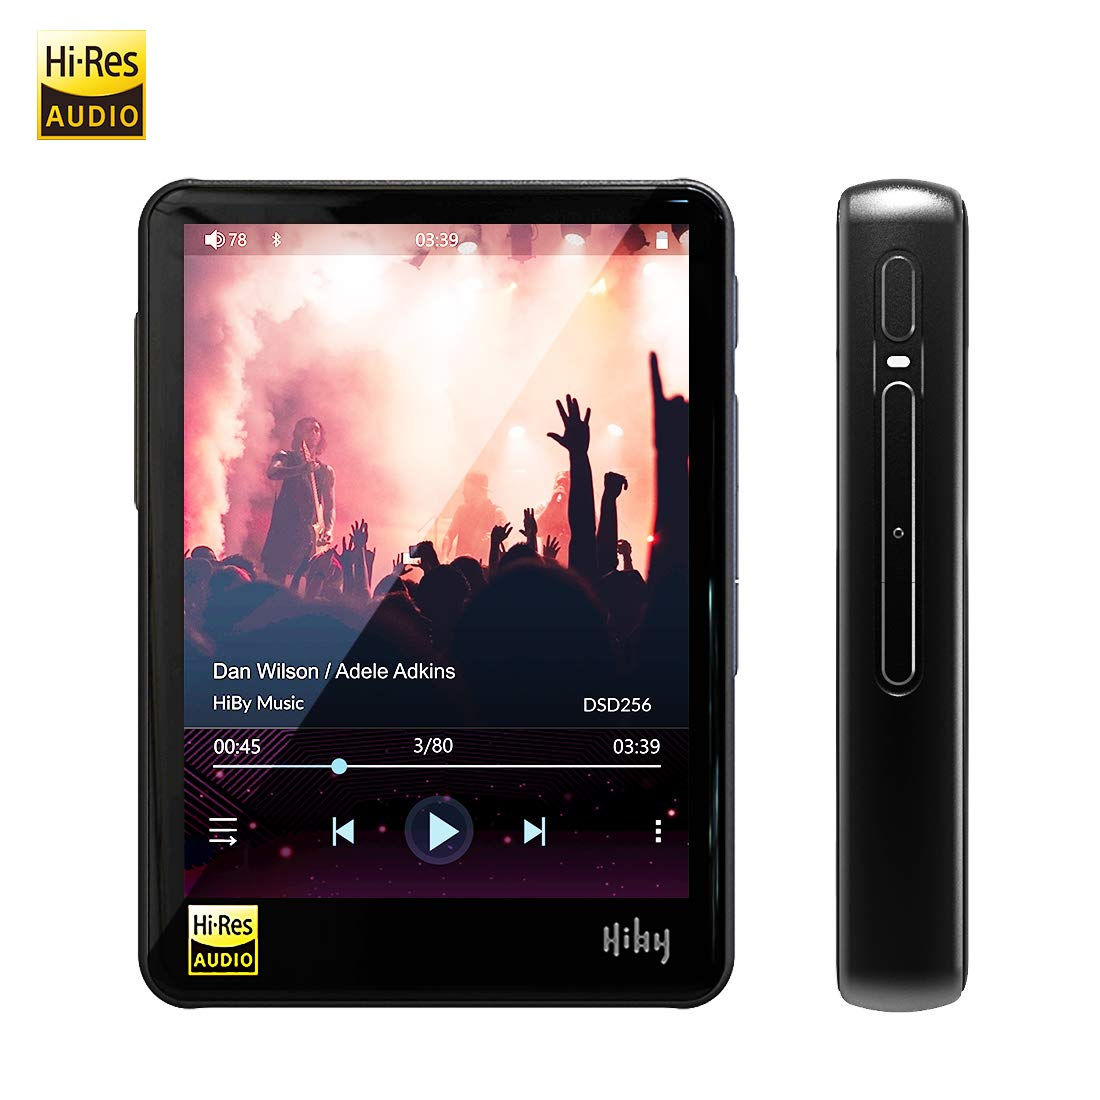 HiBy R3 Hi-Res Music Player, HiFi Lossless MP3 Player with Bluetooth/atpX/FLAC/DSD/LDAC/MQA, High Resolution Digital Audio Player Supporting WiFi with Full Touch Screen